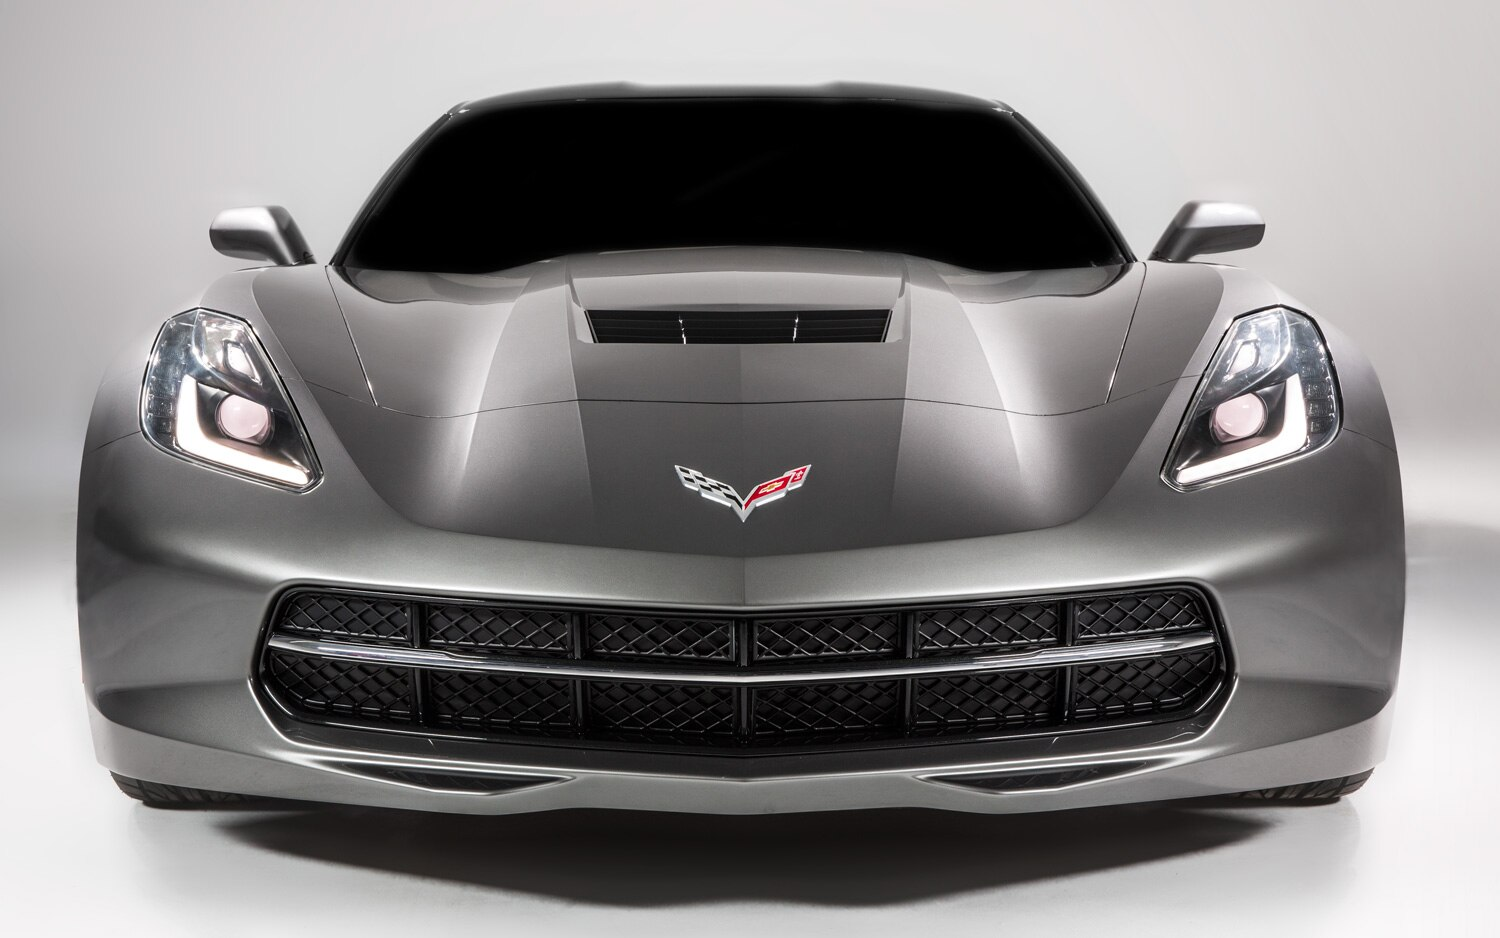 2014 Chevrolet Corvette Front View1